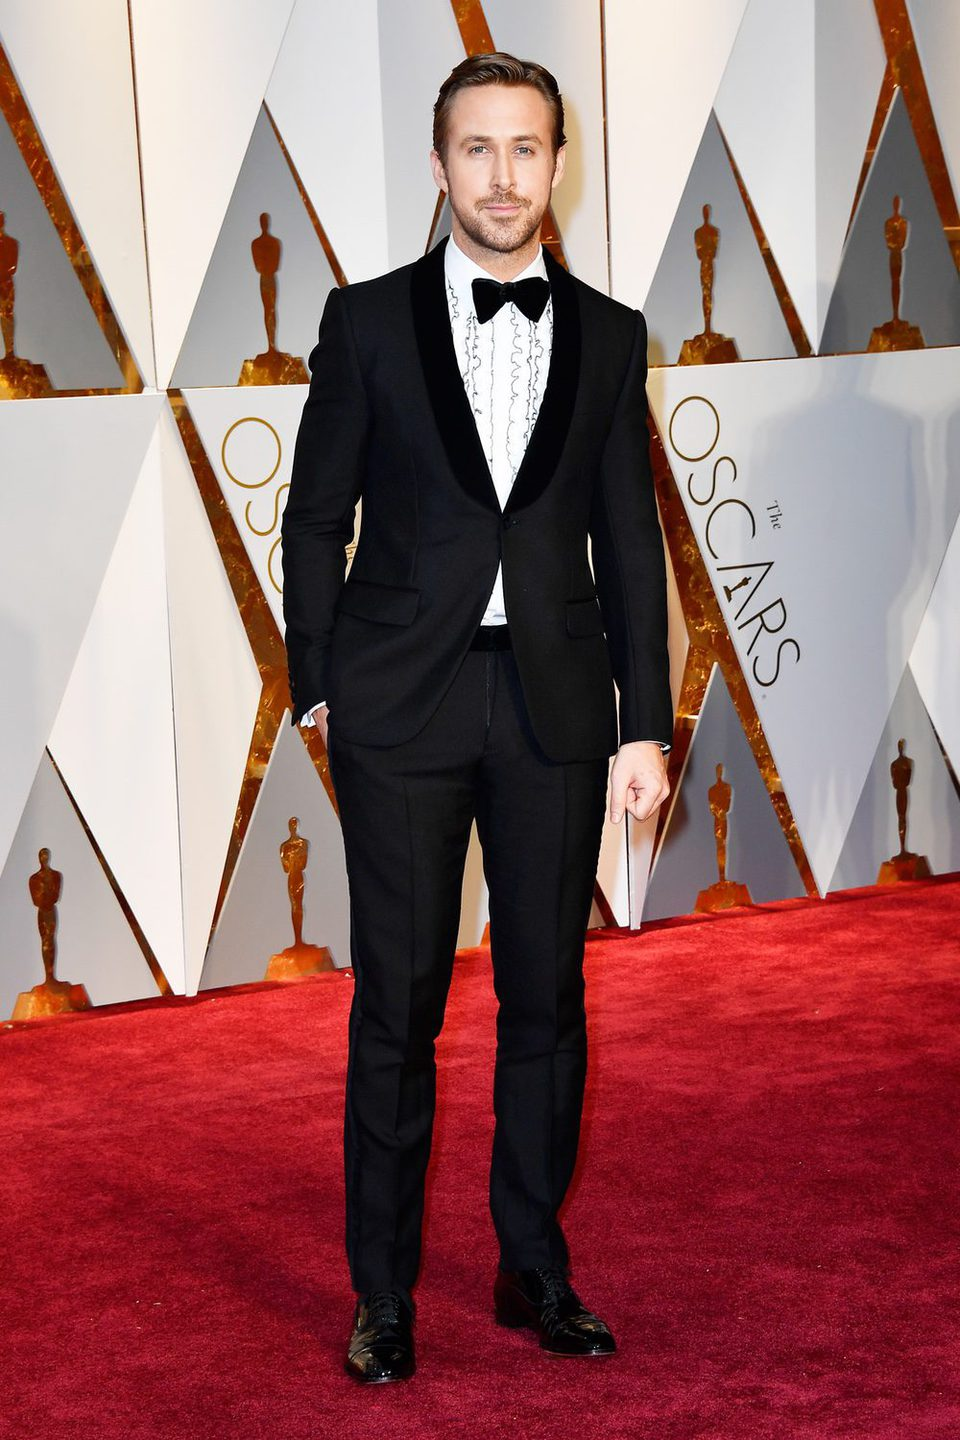 Ryan Gosling at the red carpet of the Oscars 2017